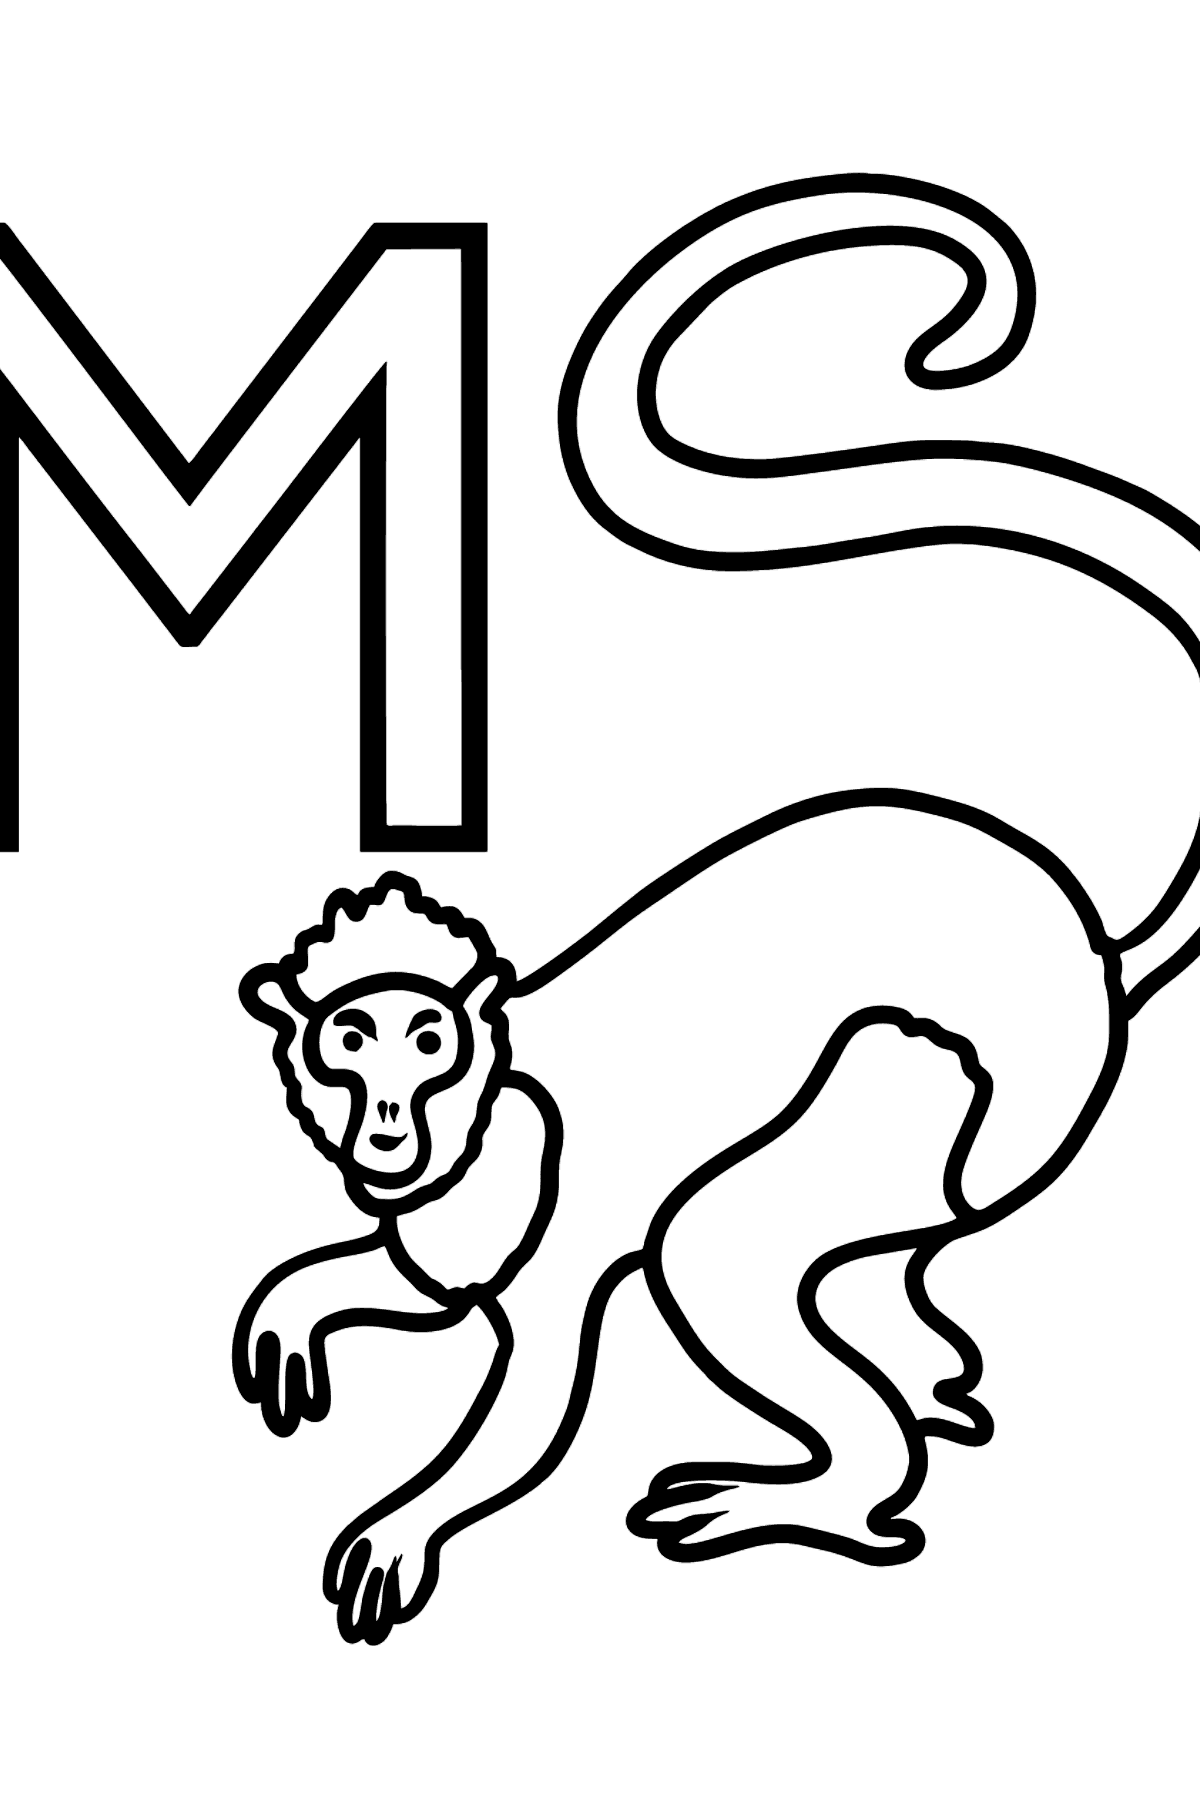 English Letter M coloring pages - A MONKEY - Coloring Pages for Kids